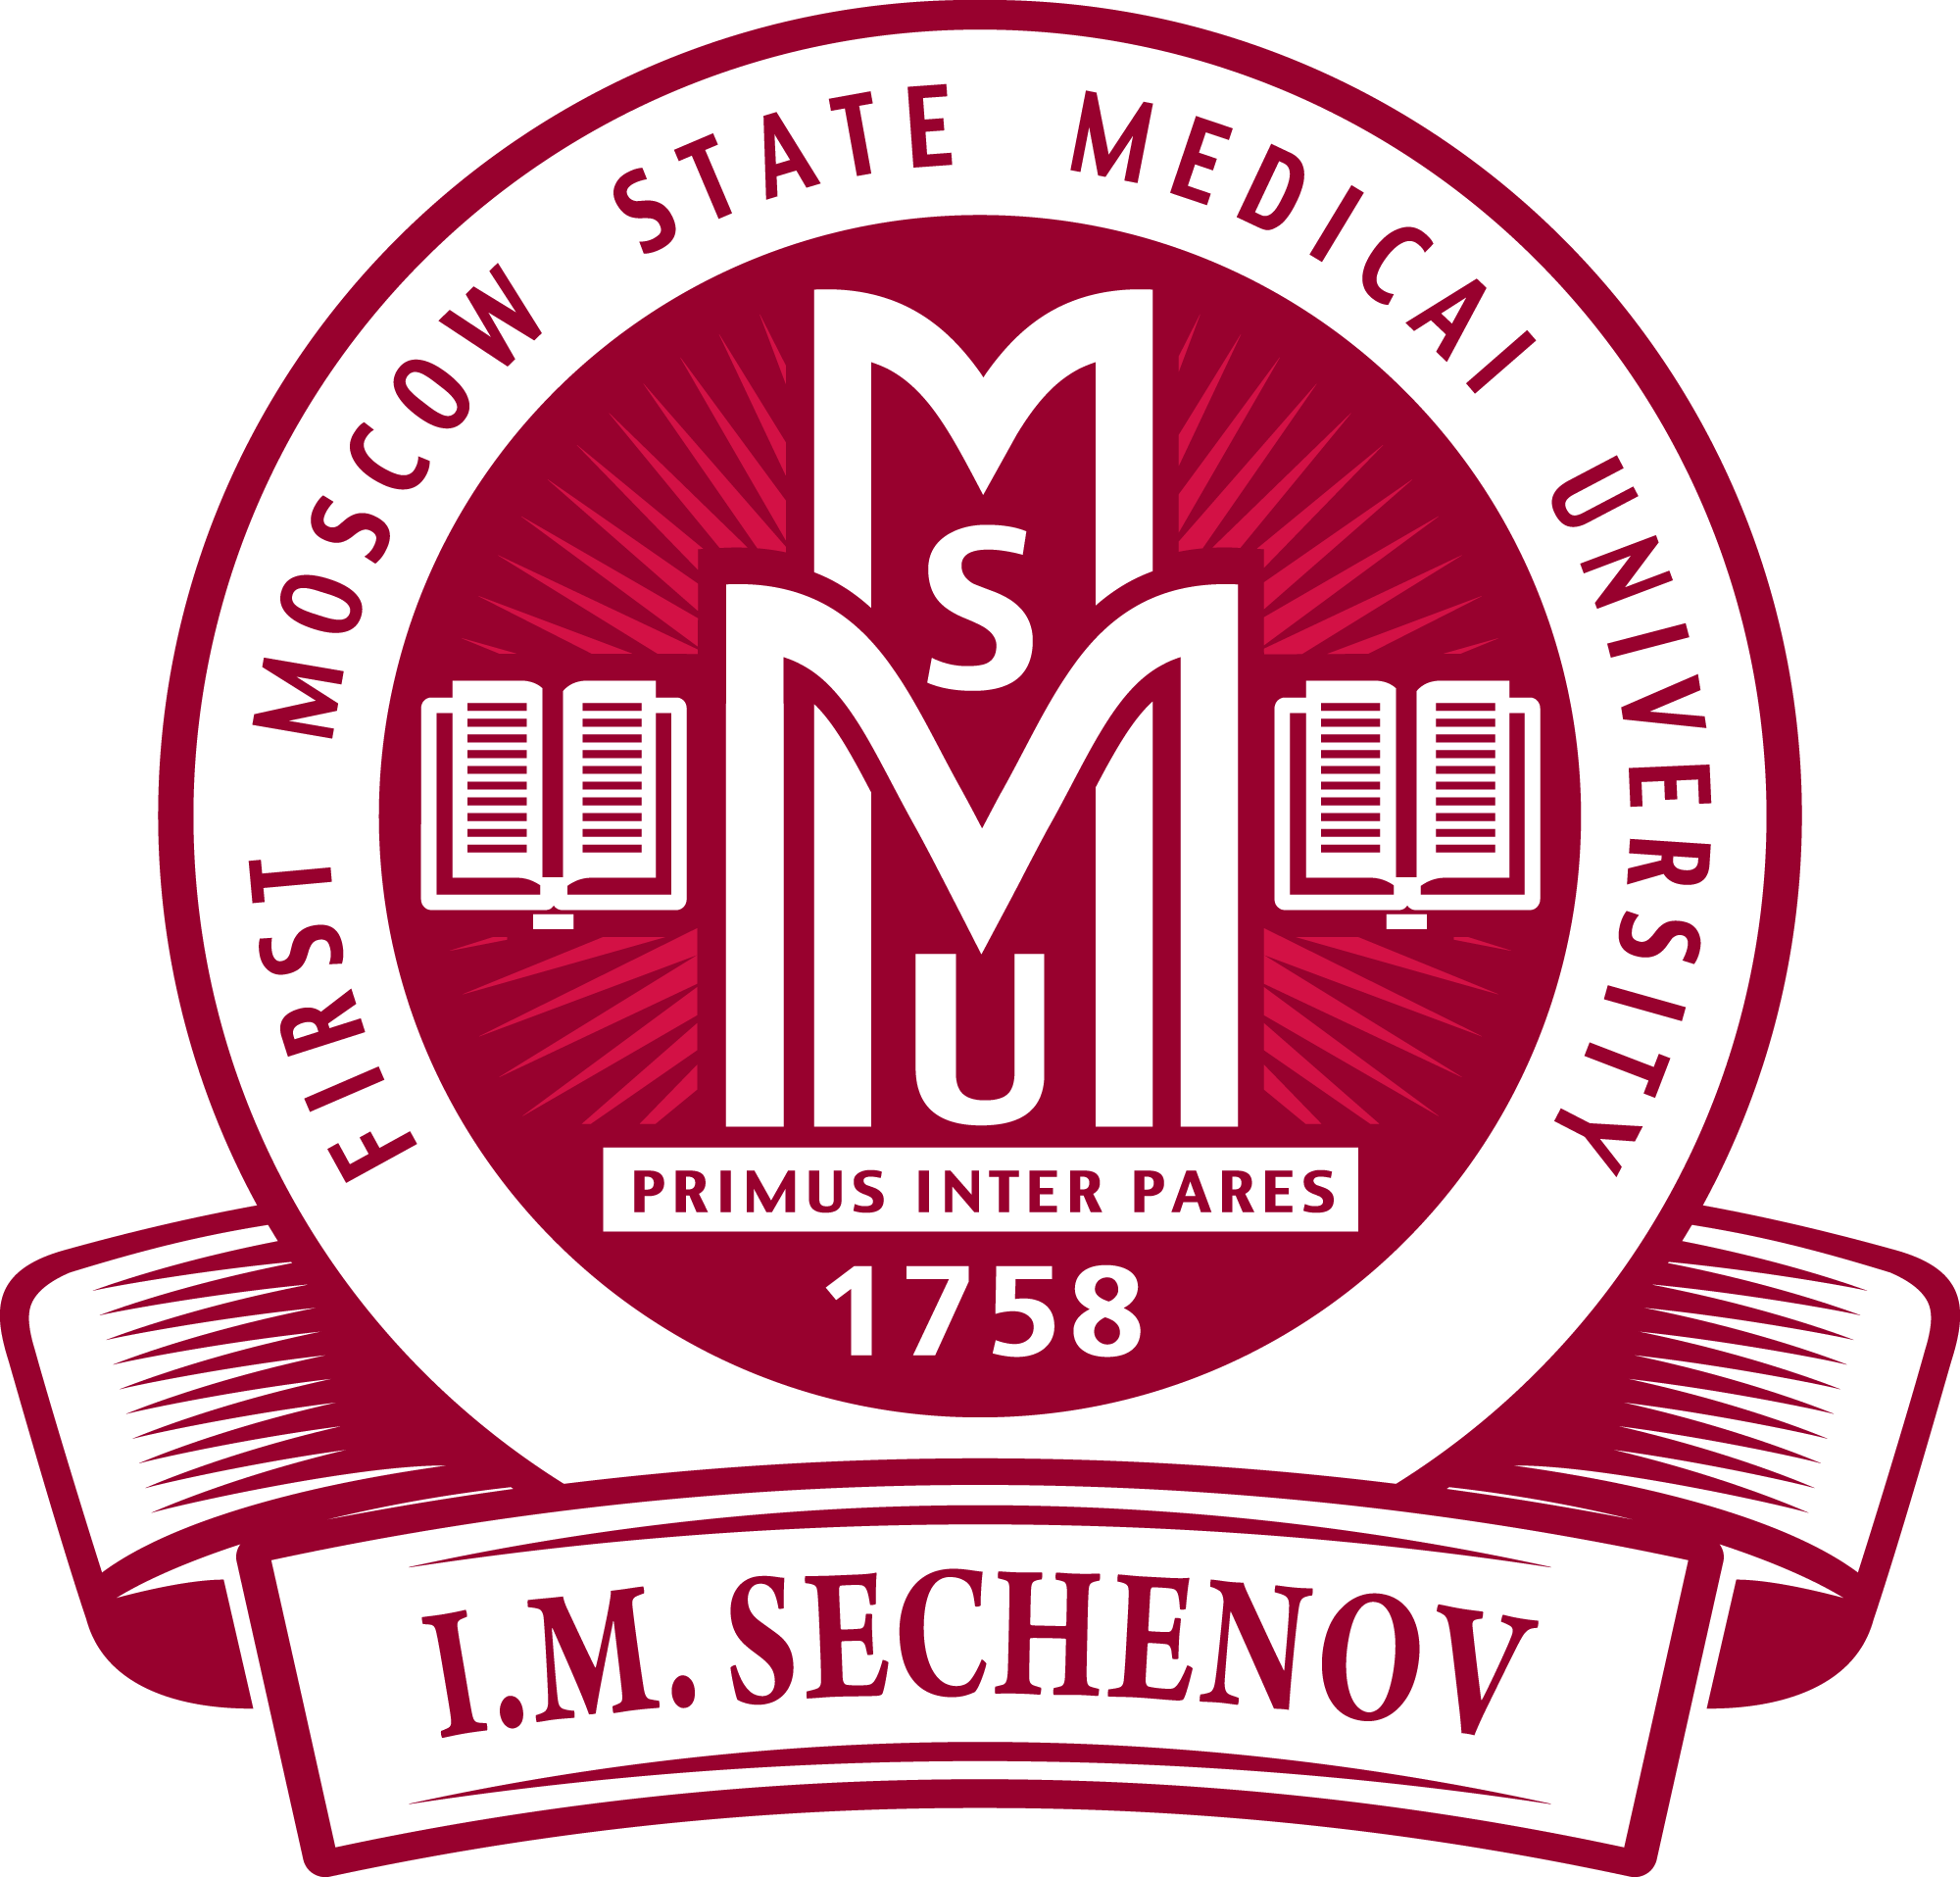 Moscow State Medical University